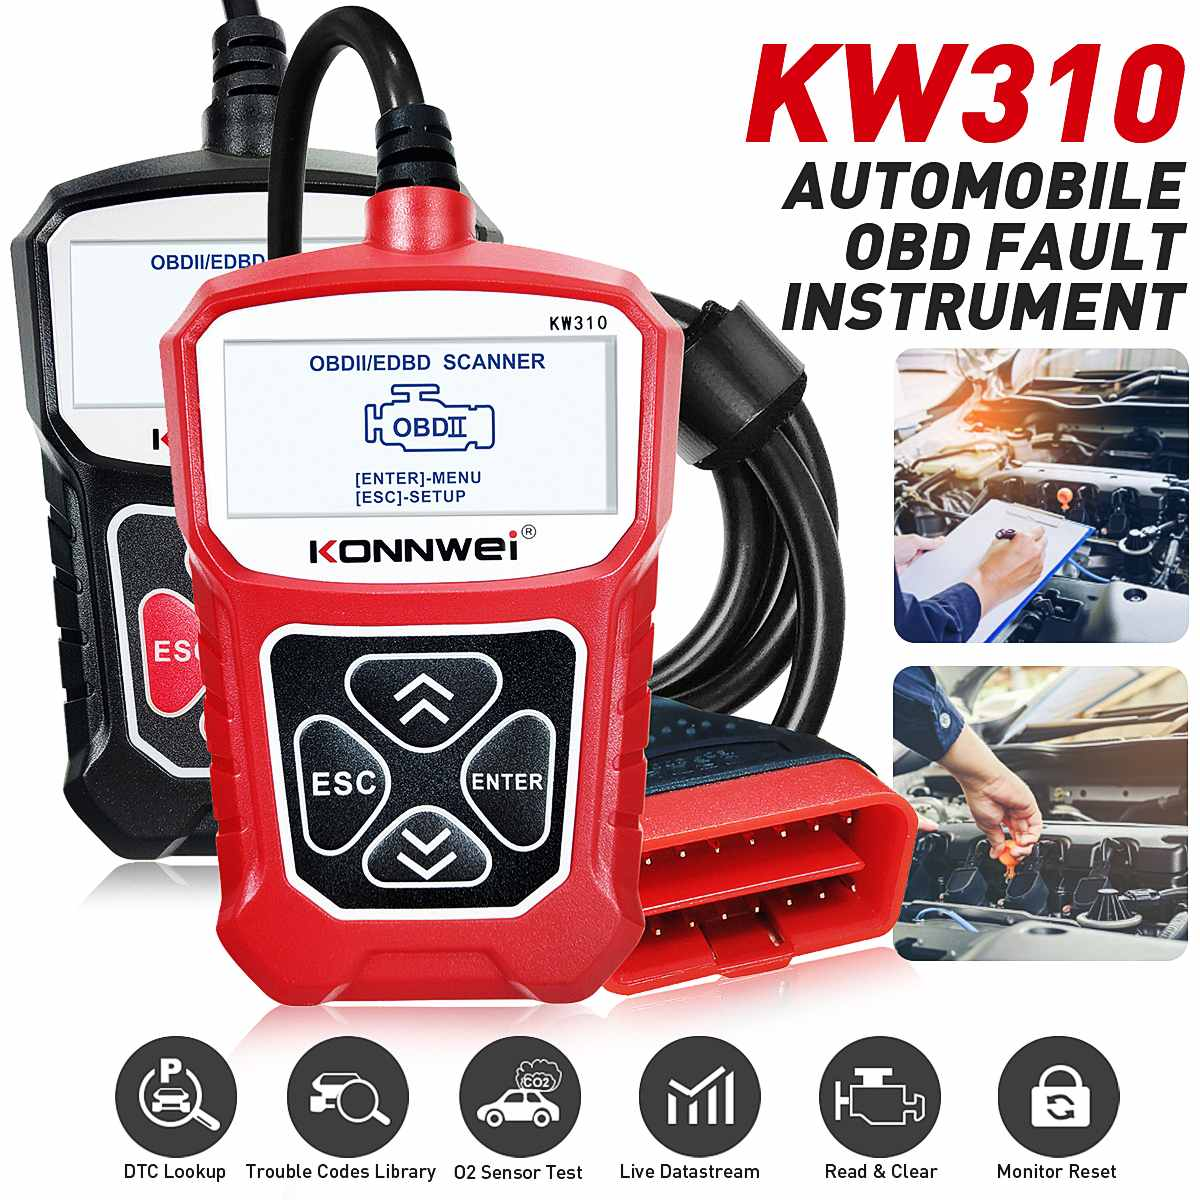 KONNWEI KW310 OBD2 Scanner OBD Universal Auto Diagnostic Tool Check Engine Code Reader Automotive Diagnostic Tool for Auto Car